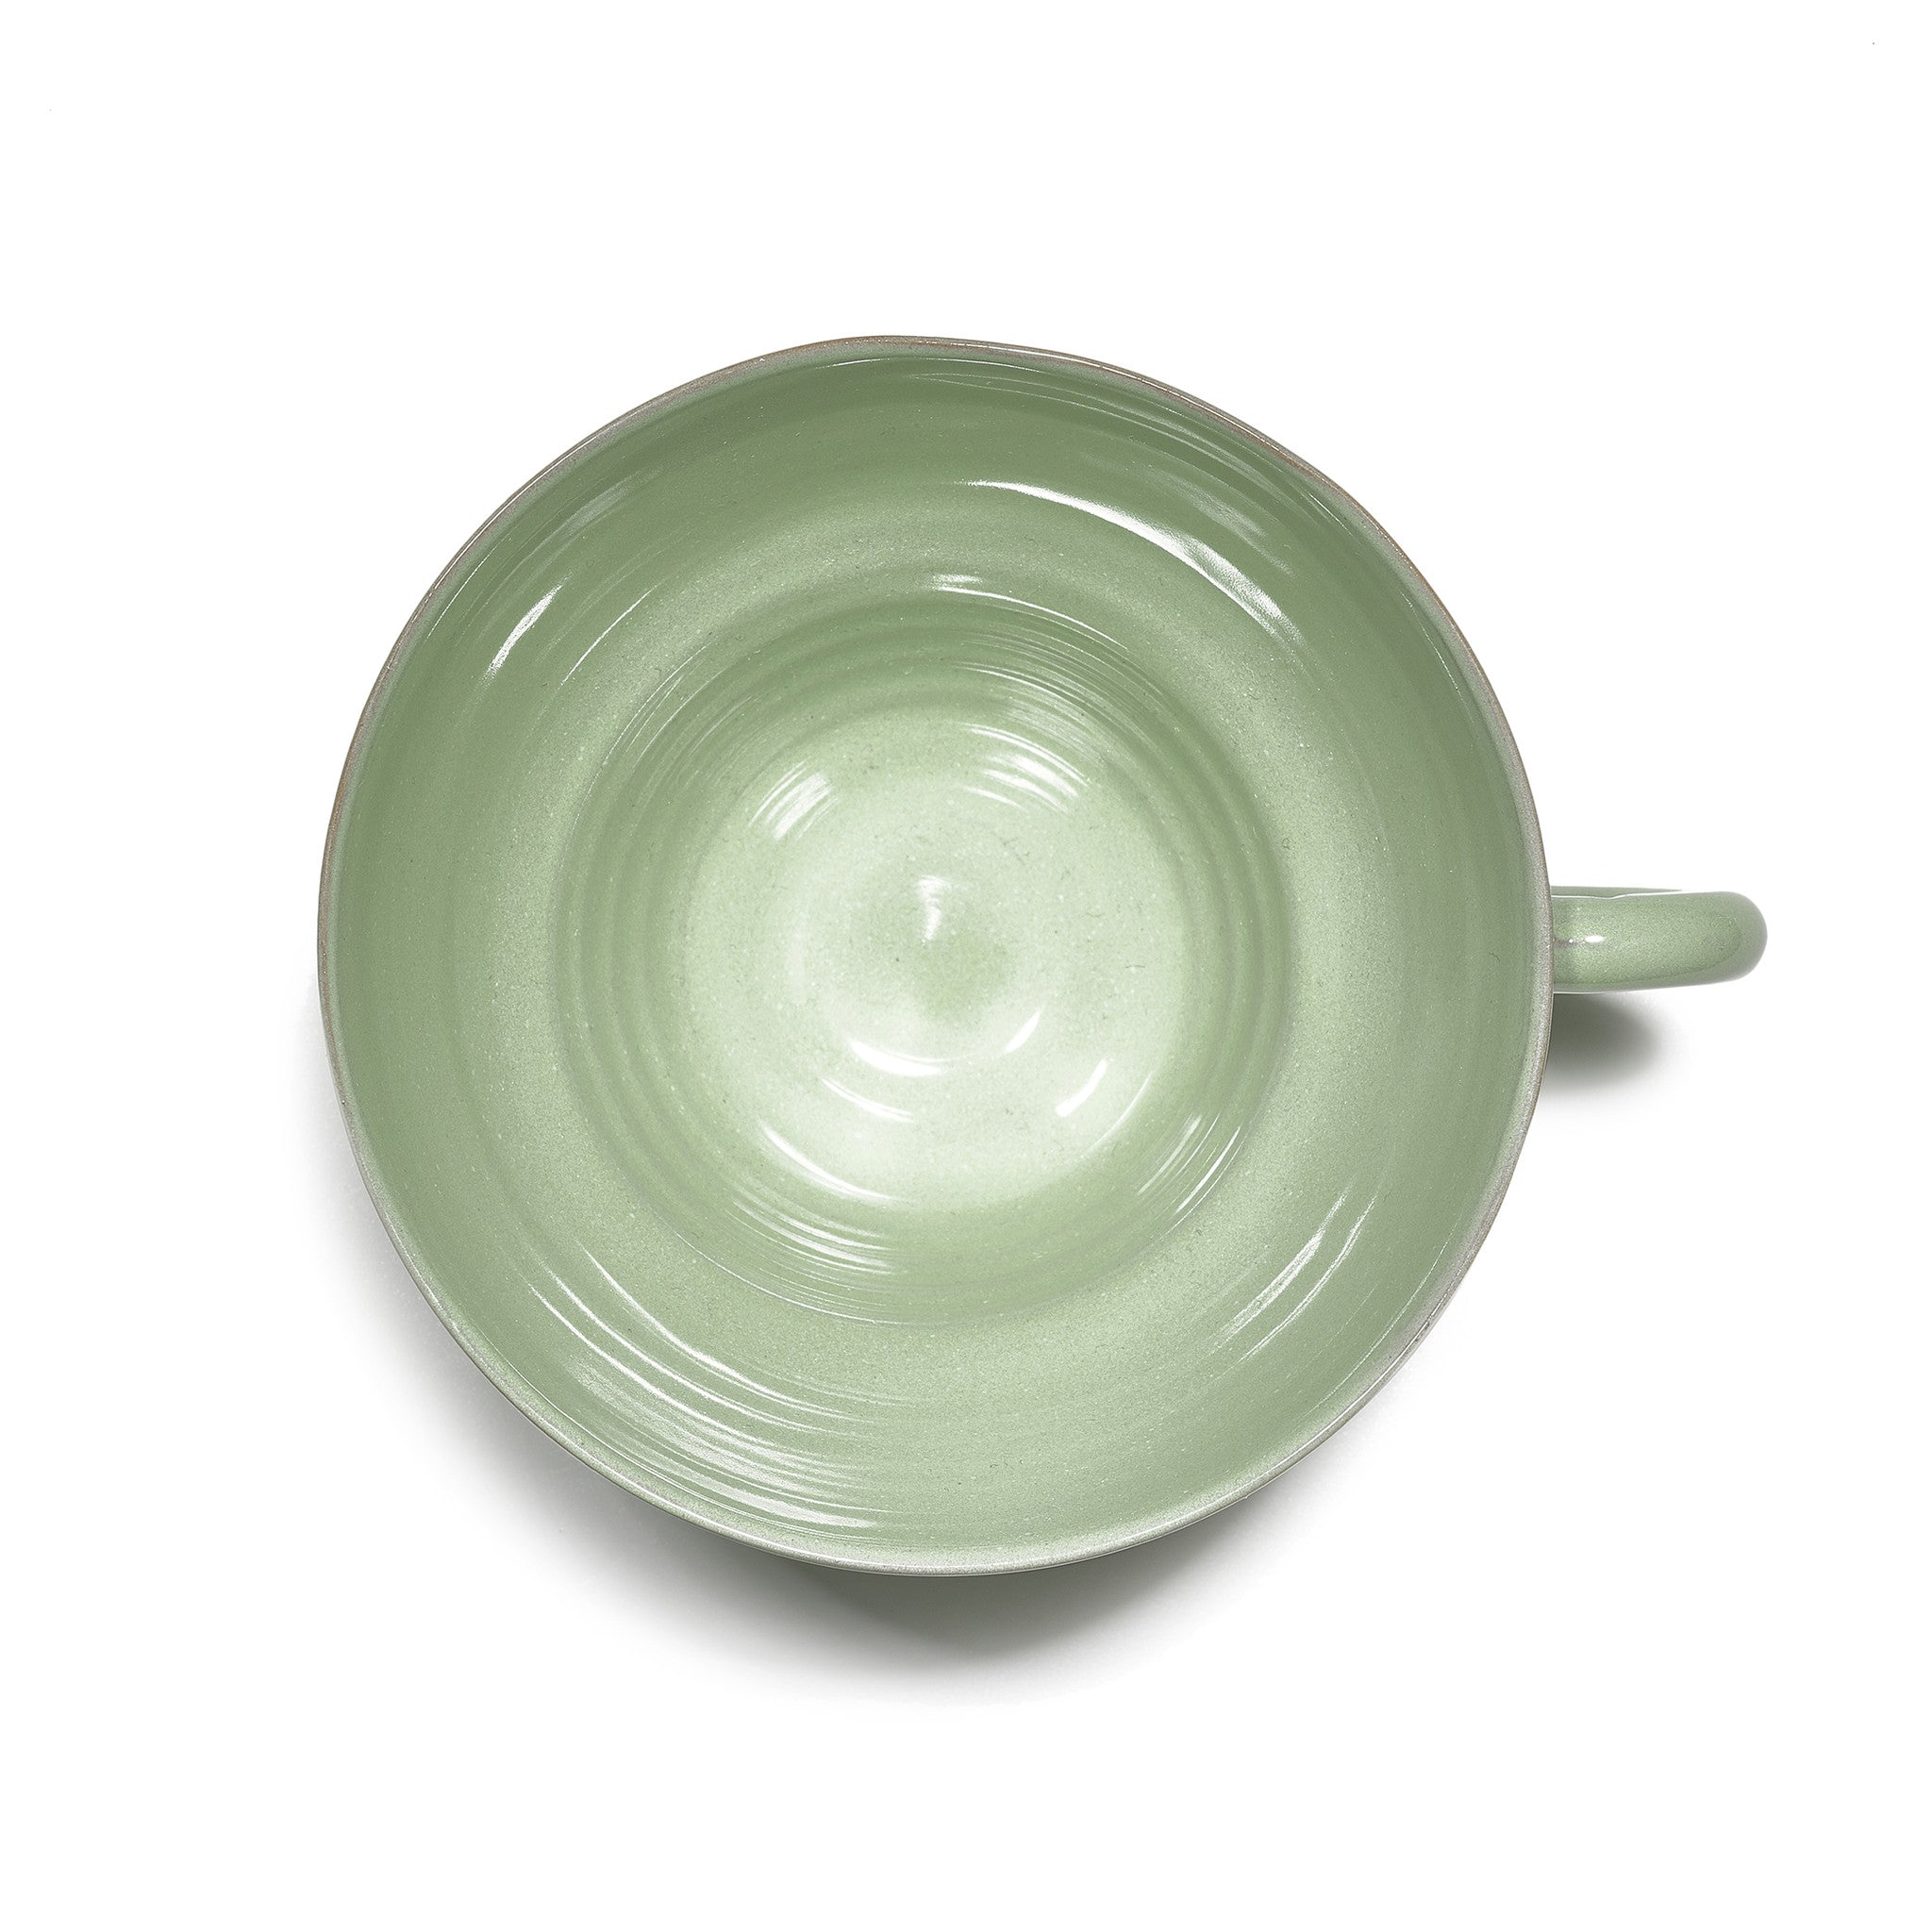 Hot Chocolate Mug in Jade Green